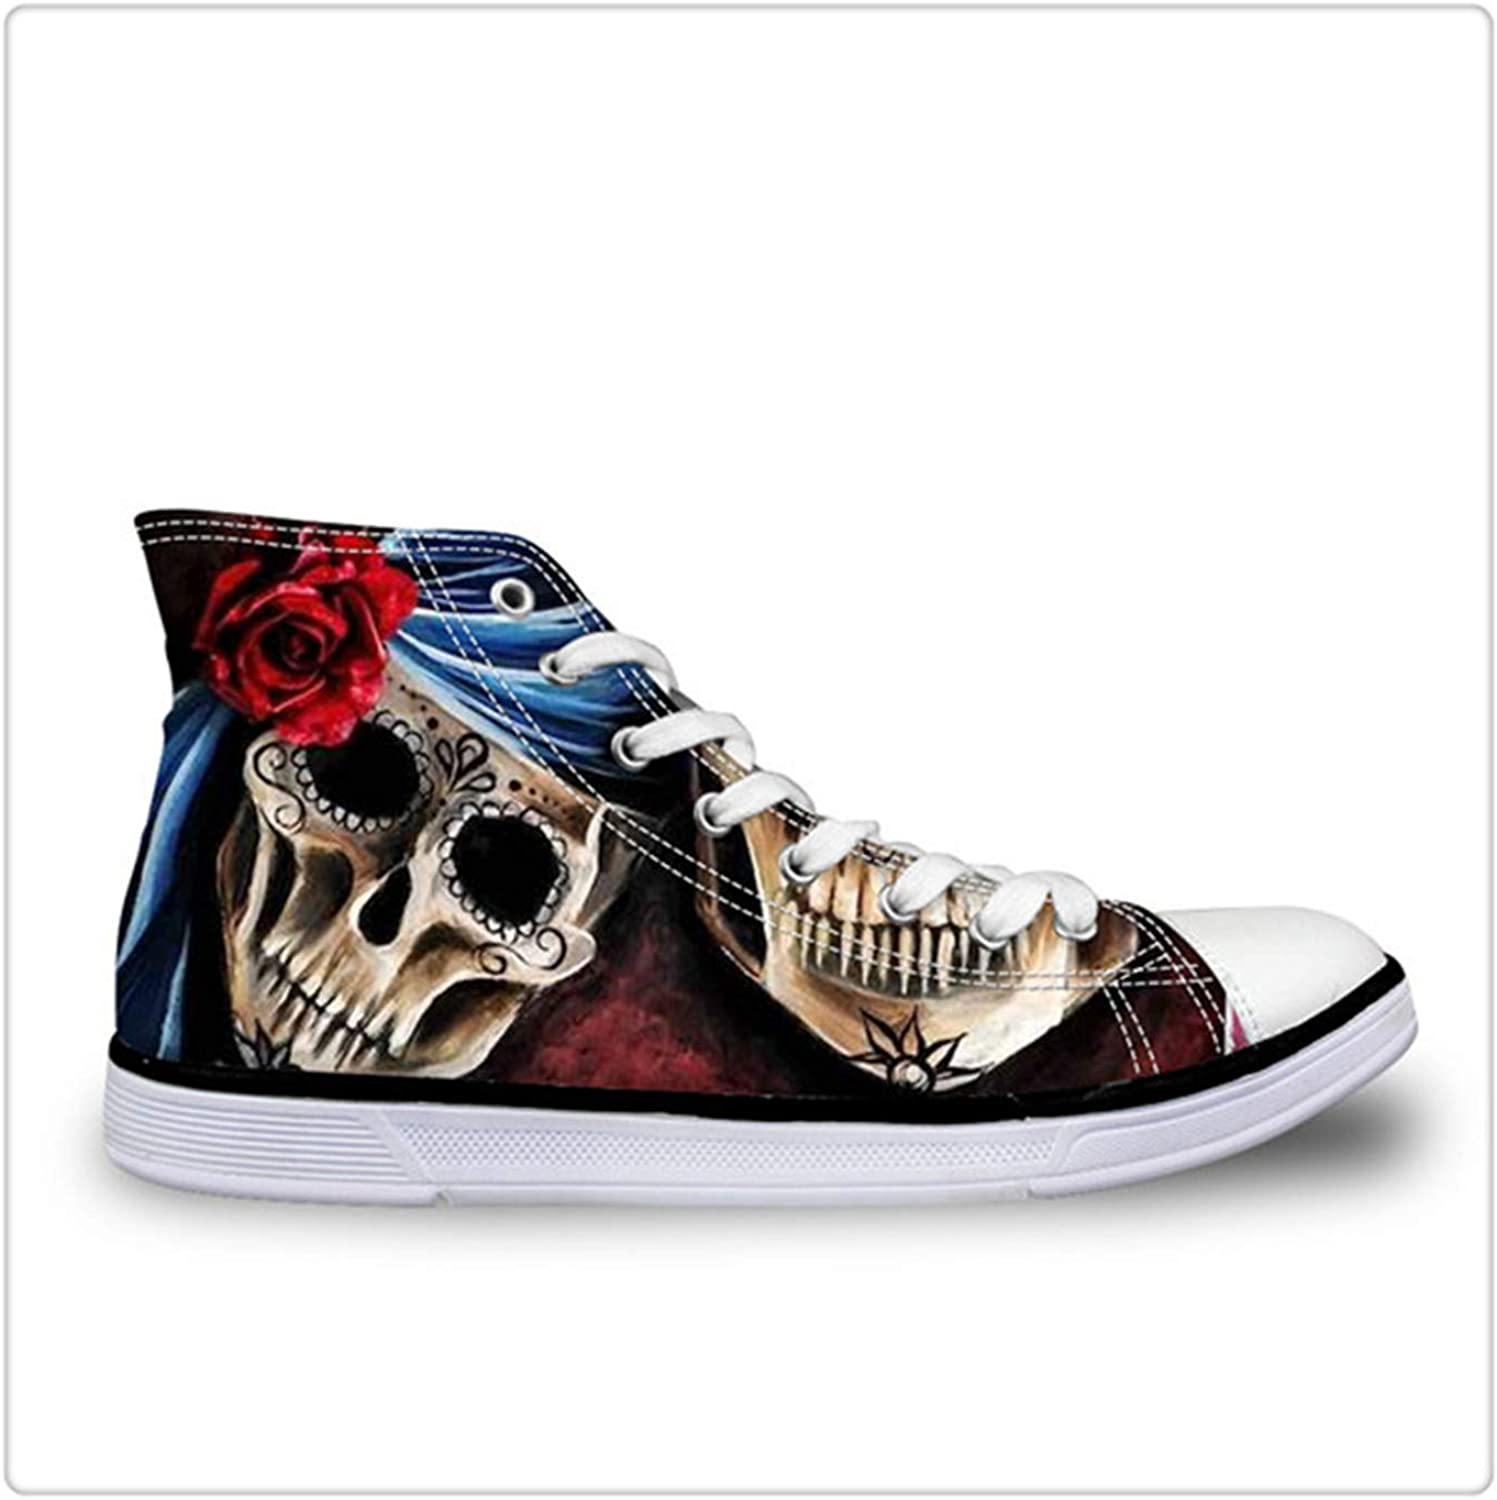 NNHLPO& Punk Skull Flower Women High-top Canvas shoes Lace Up Flat Female Casual Vulcanize shoes Ladies Hip Hop Daily shoes C638AK 40